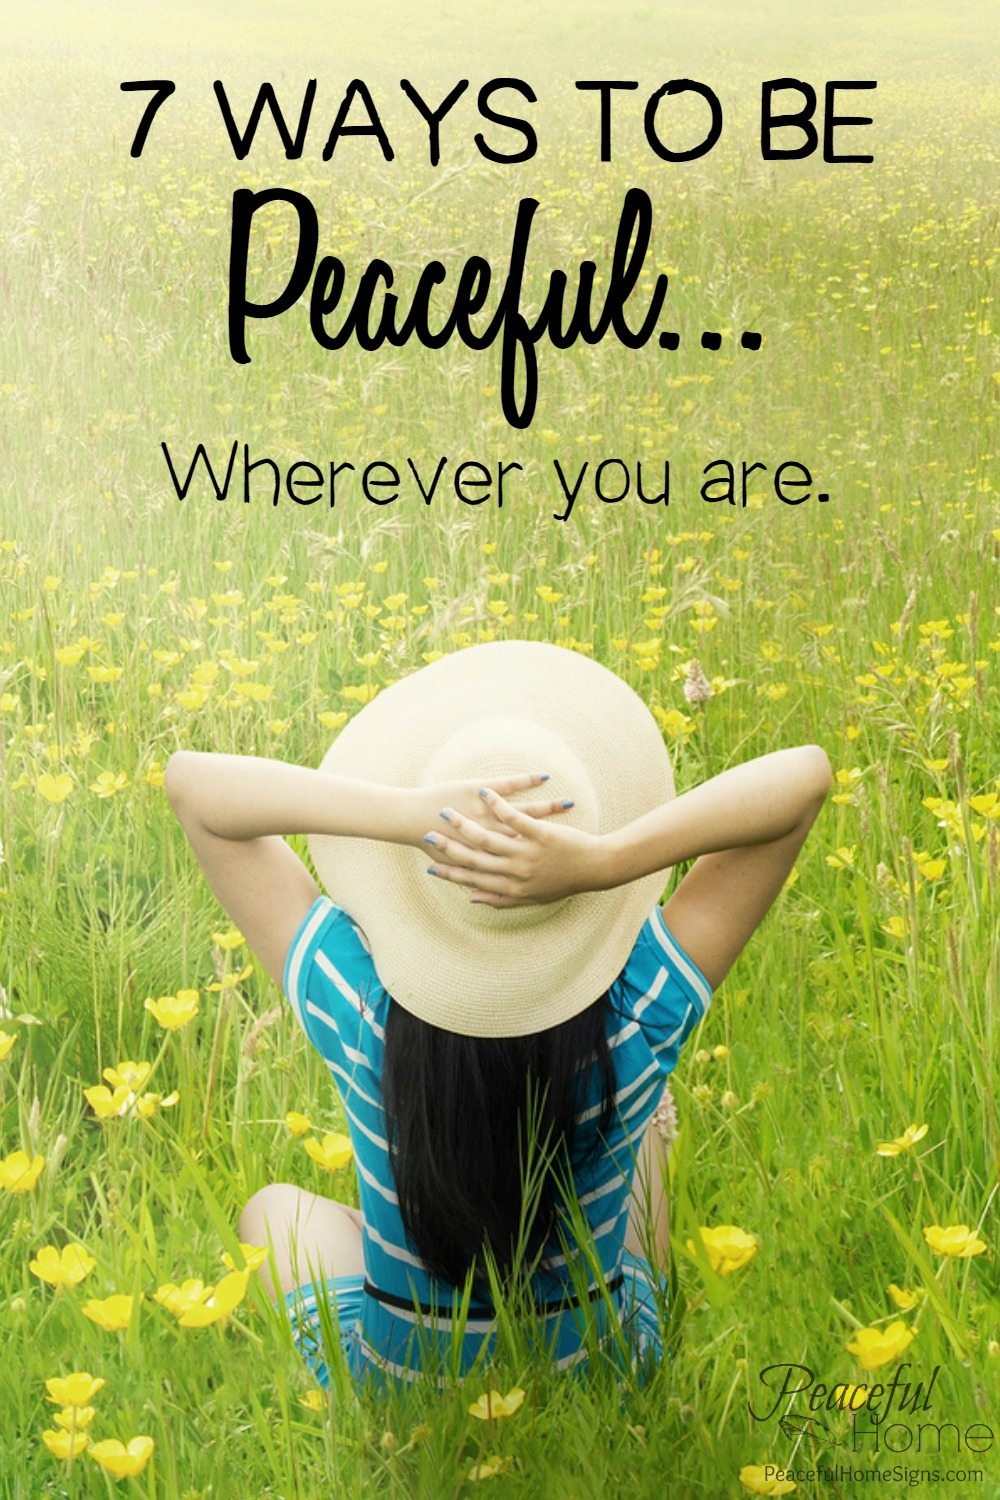 7 ways to be peaceful wherever you are | How to stay peaceful | Christian blogger | Faith based guide to staying peaceful